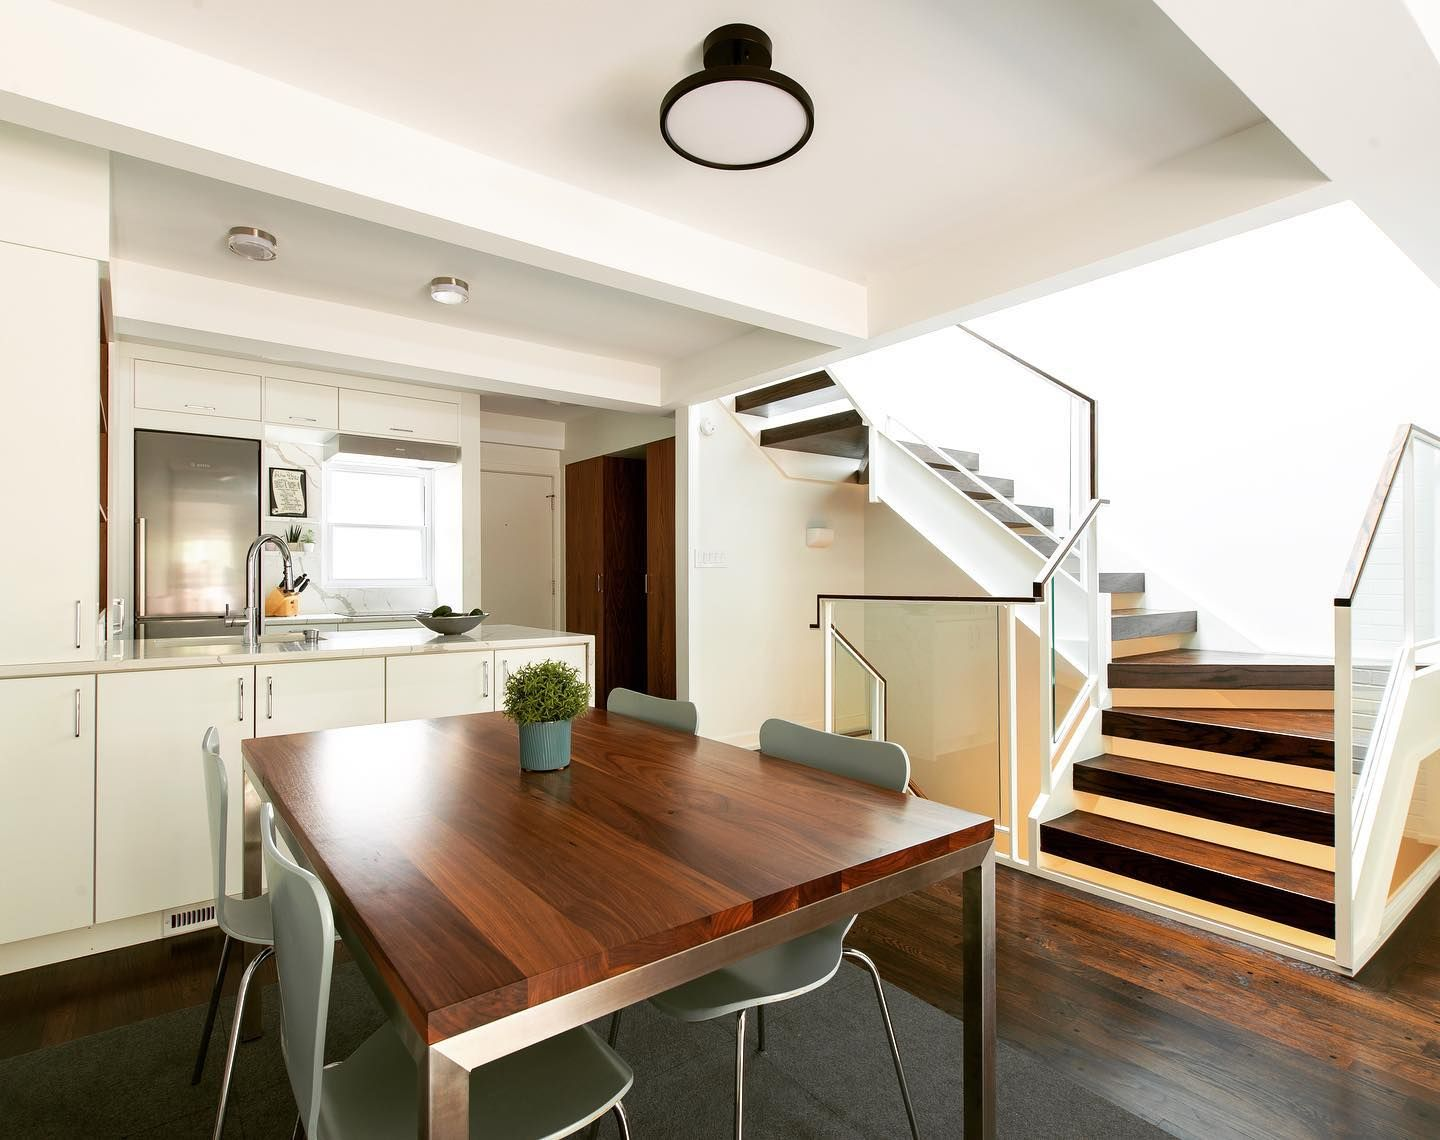 Renters seeking an upgraded space should look at this